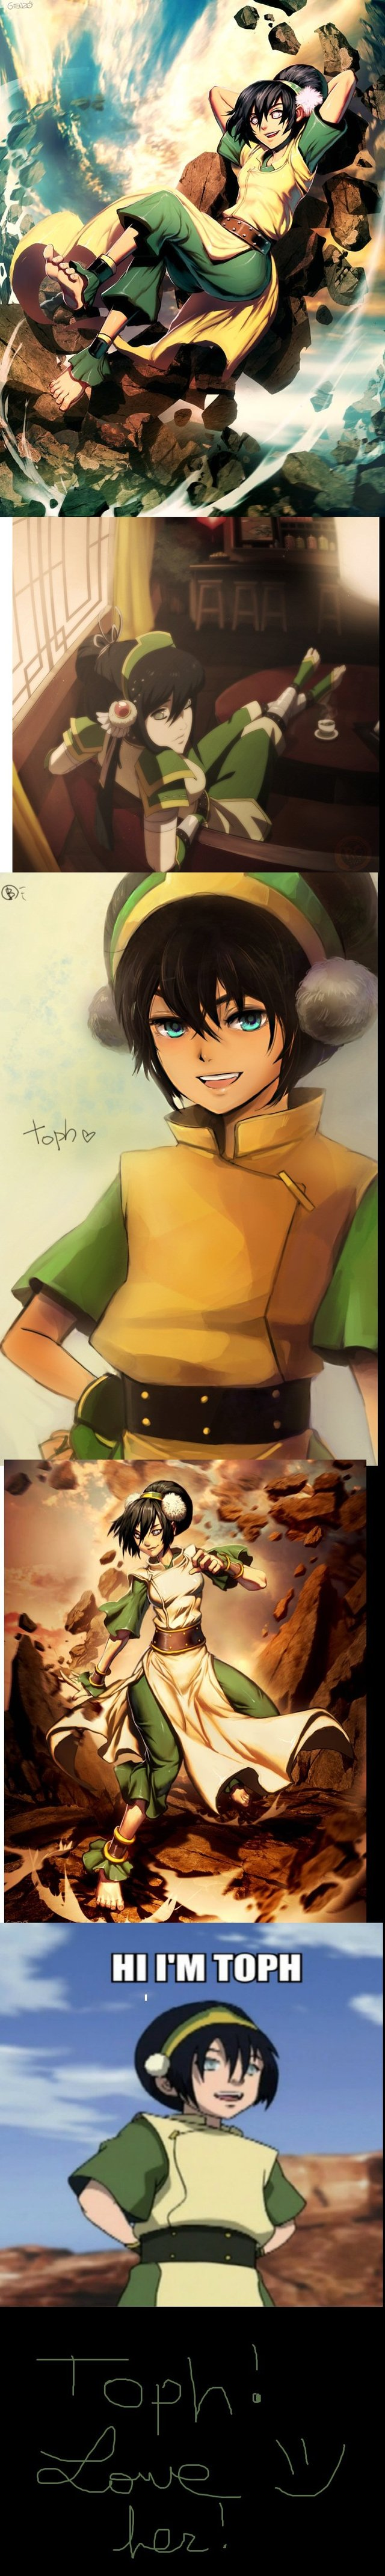 toph porn pictures funny dec favorite toph tribute mines